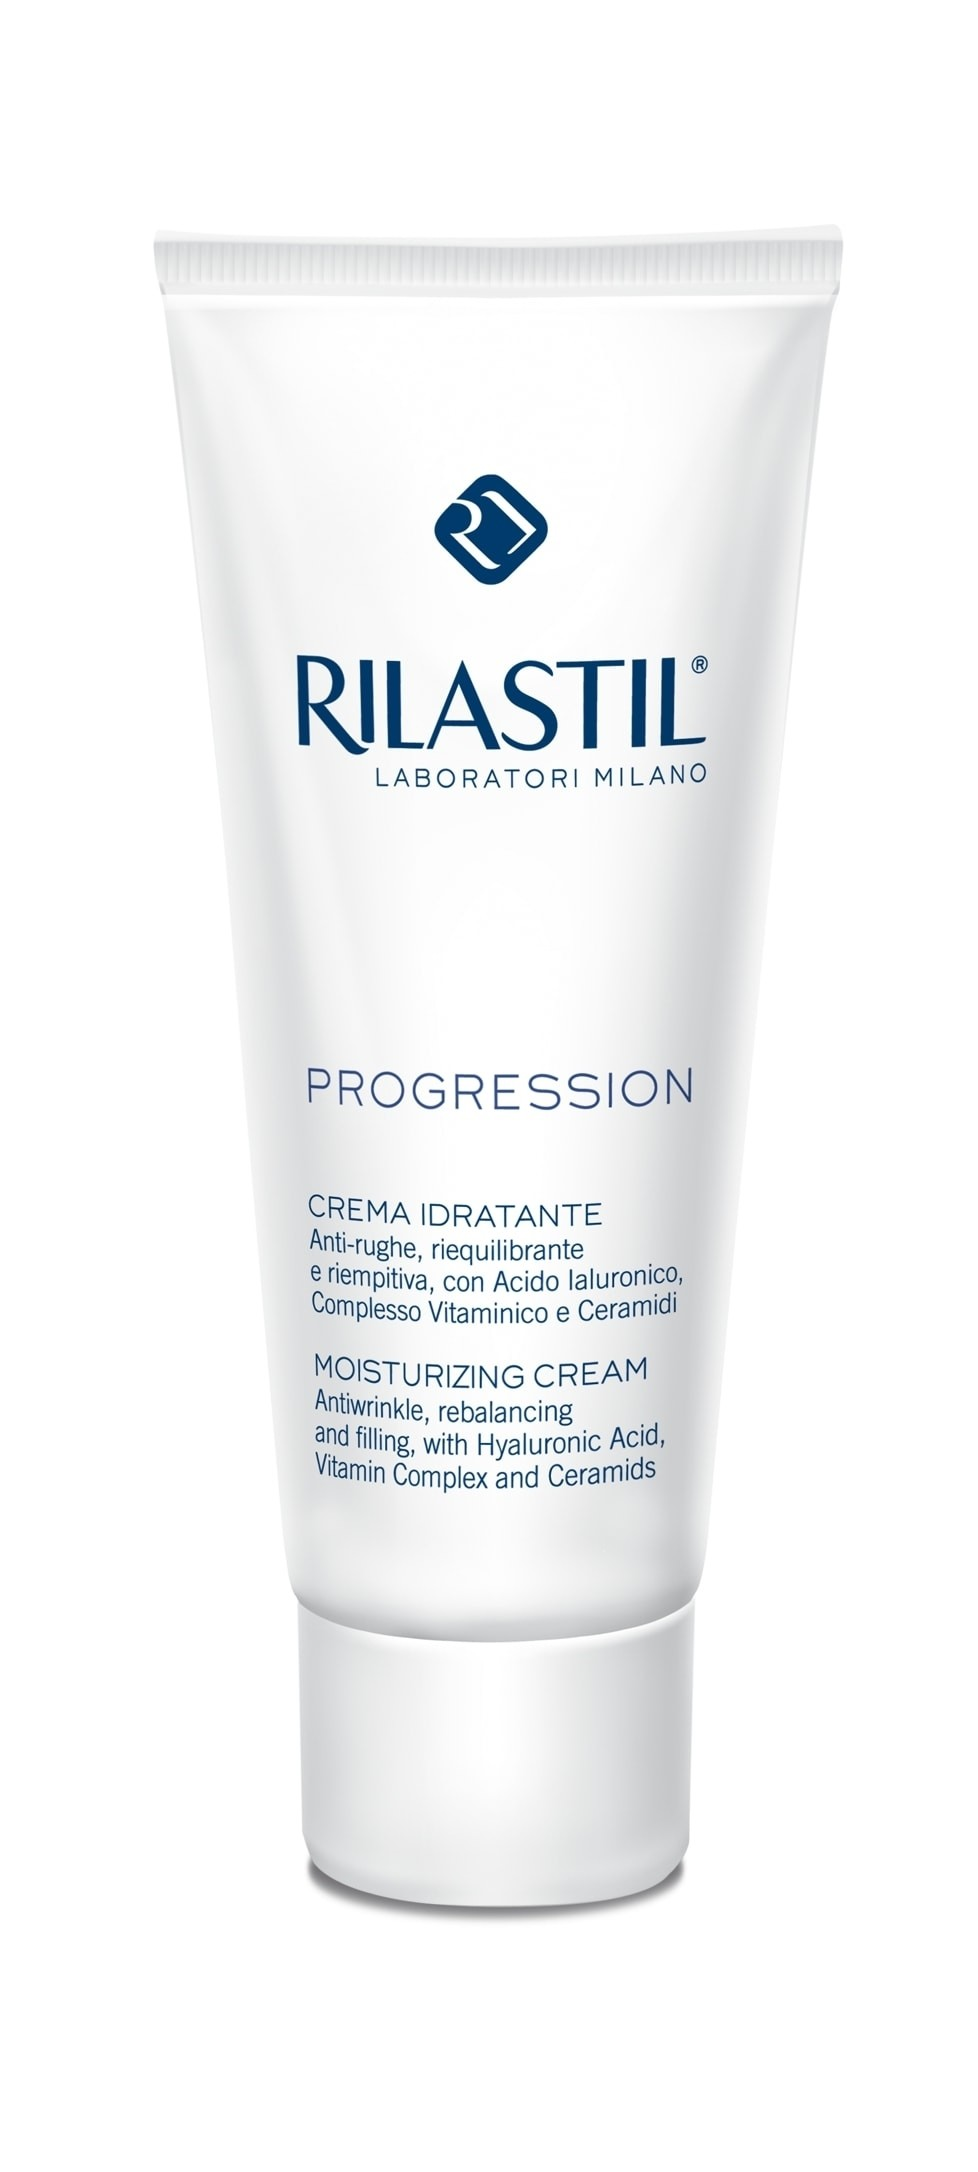 Rilastil Progression Crema Idratante 50ml